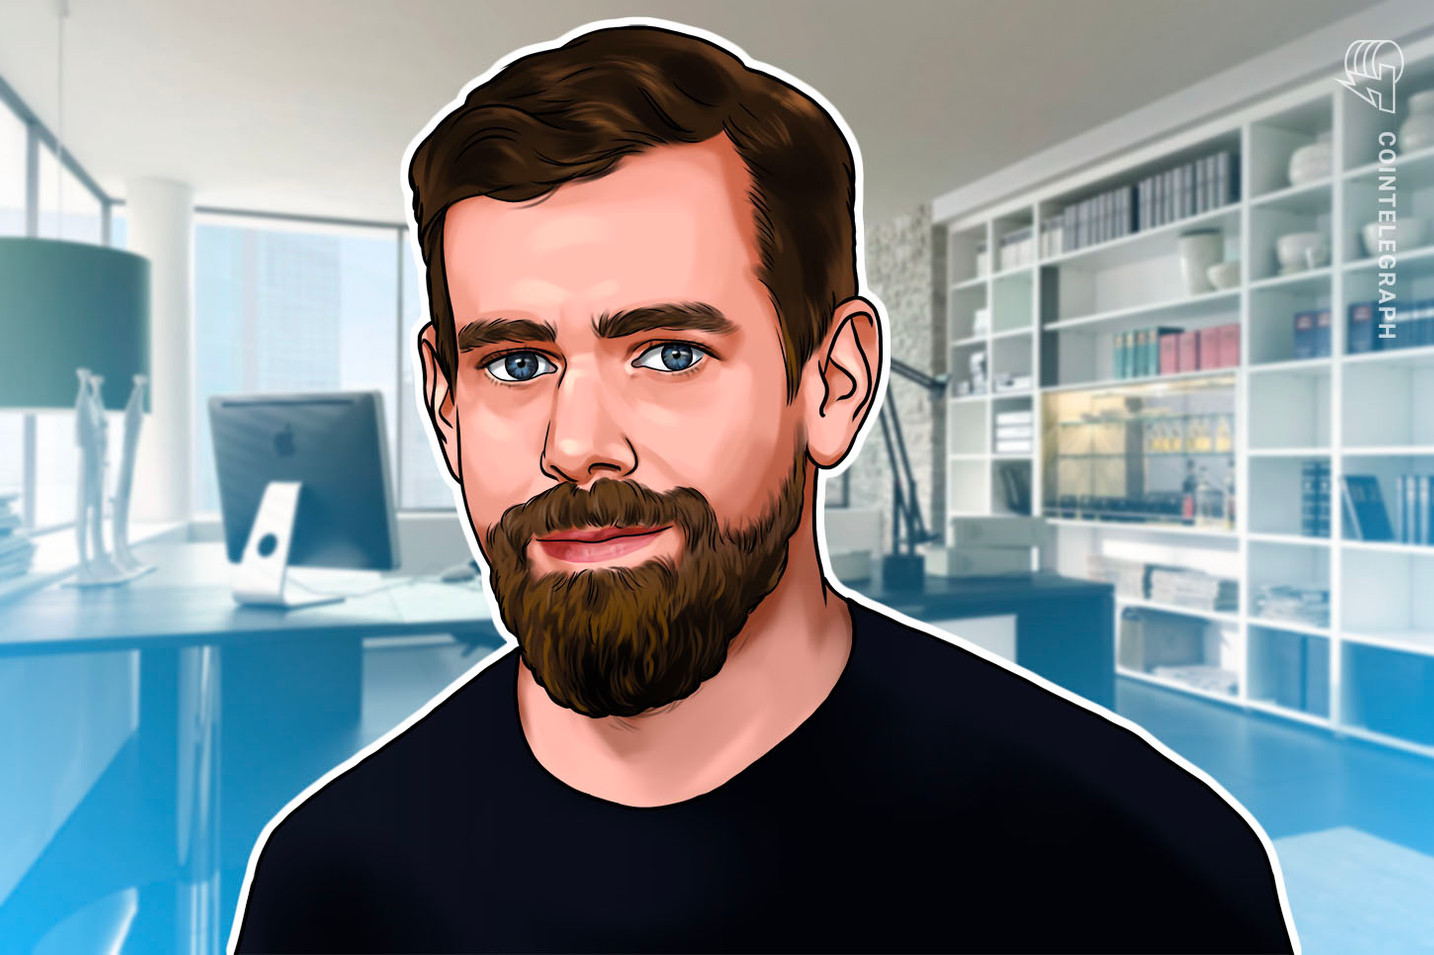 Dorsey's Crypto-Friendly Firm Square Joins Paycheck Protection Program